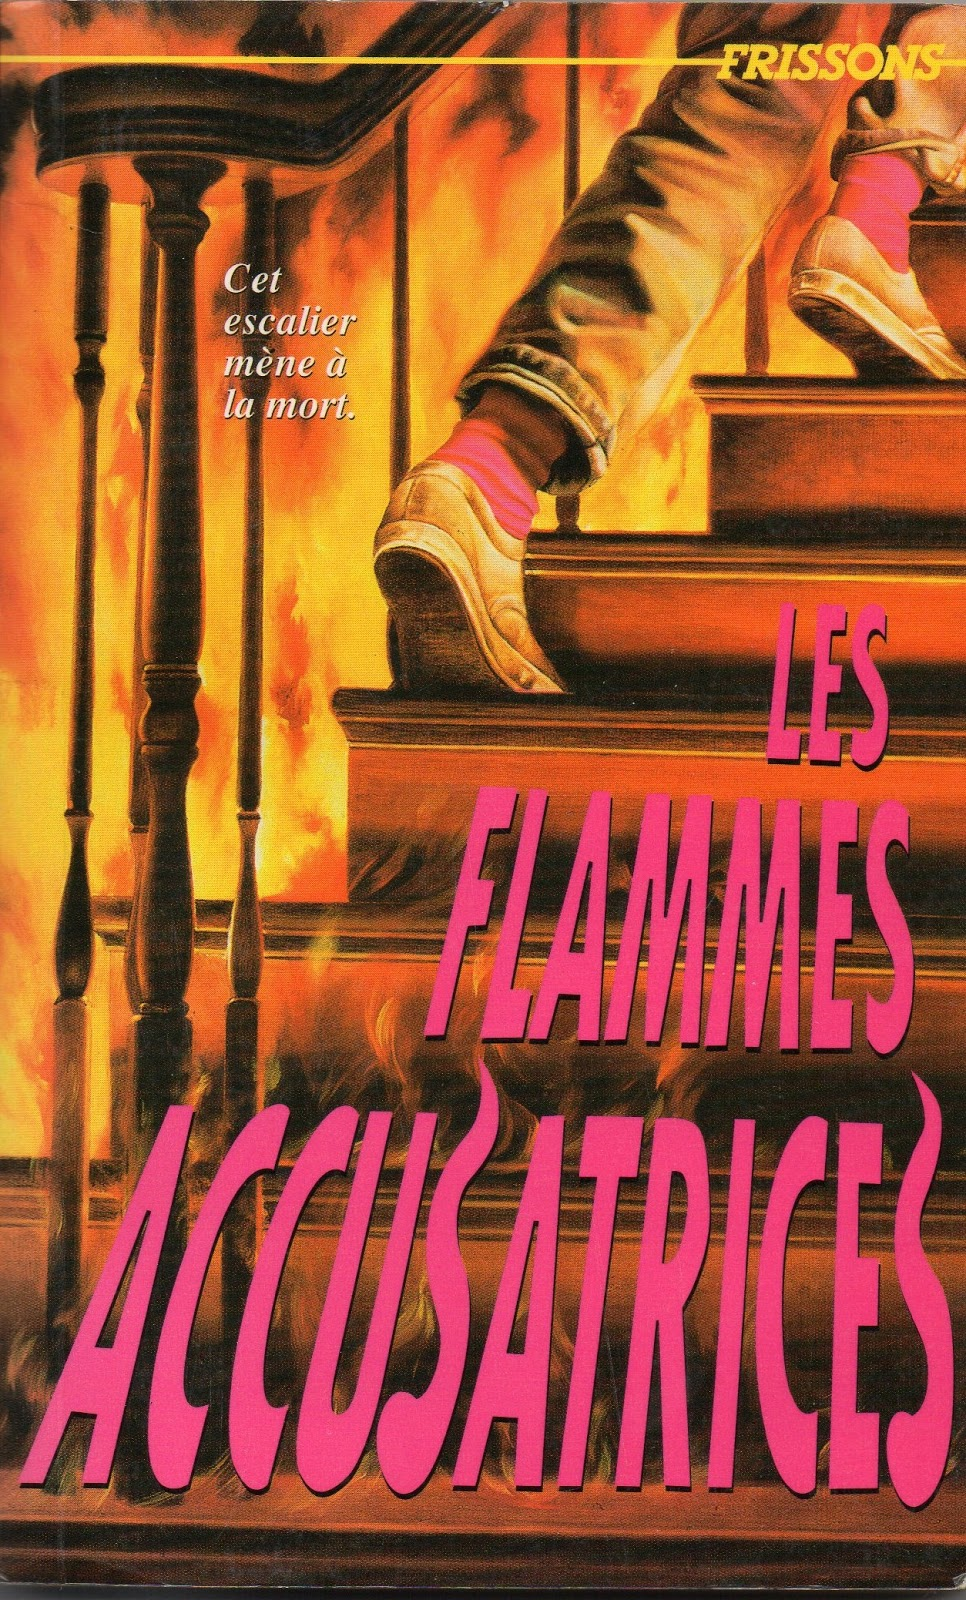 Frissons #35 Les flammes accusatrices (French - Mars 1994)